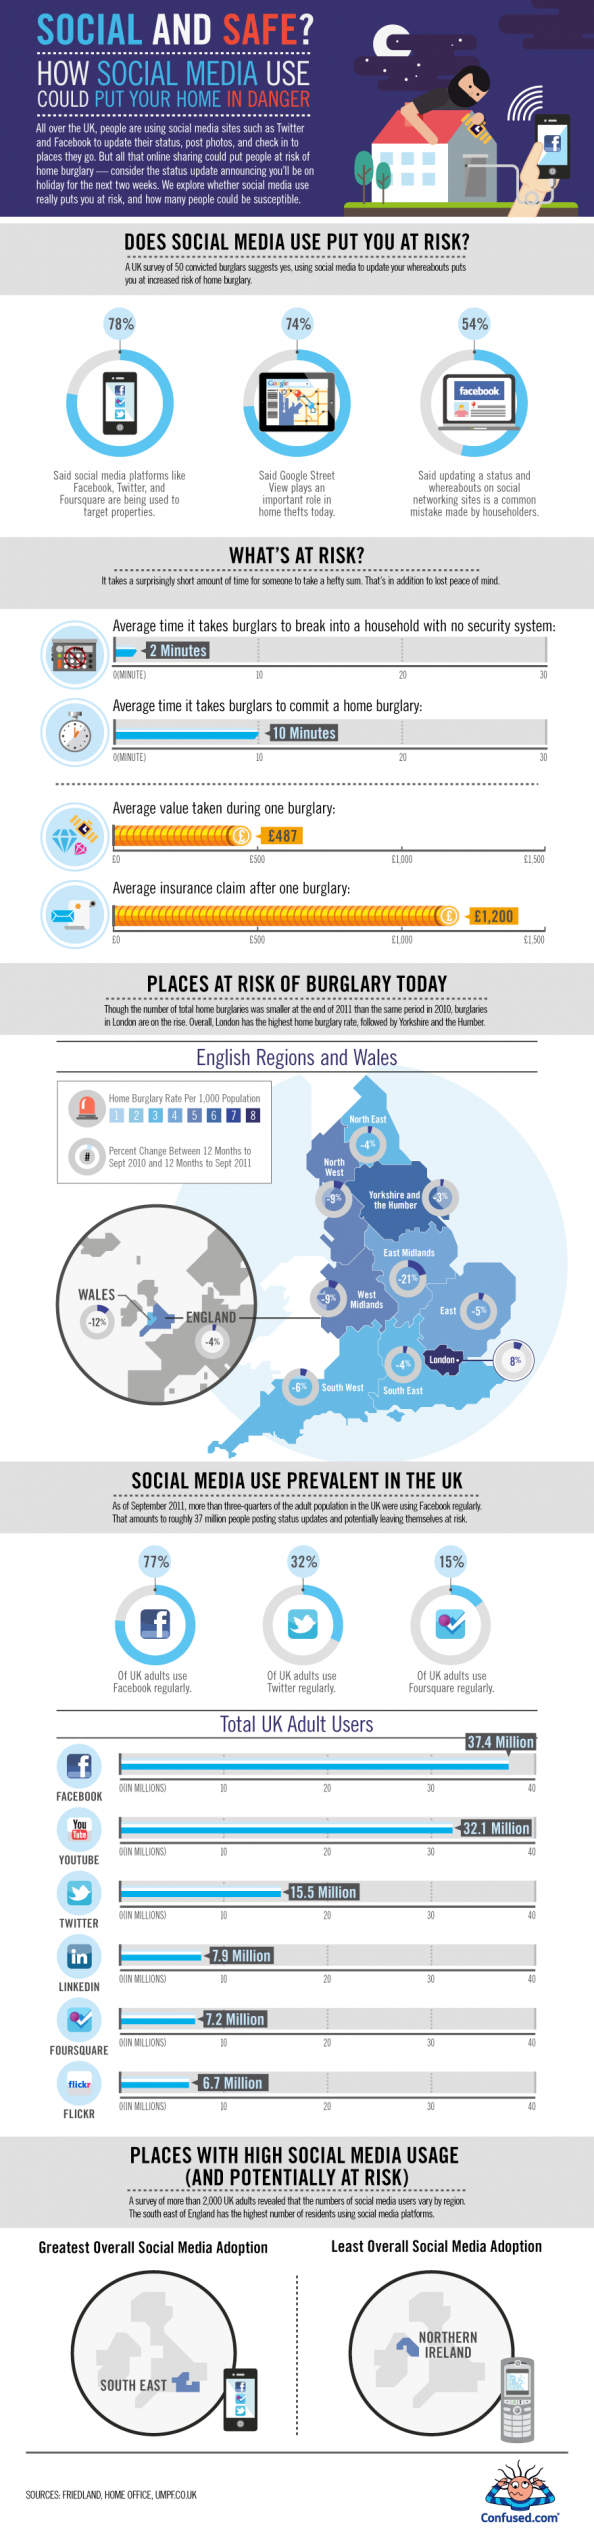 Social and Safe? Infographic